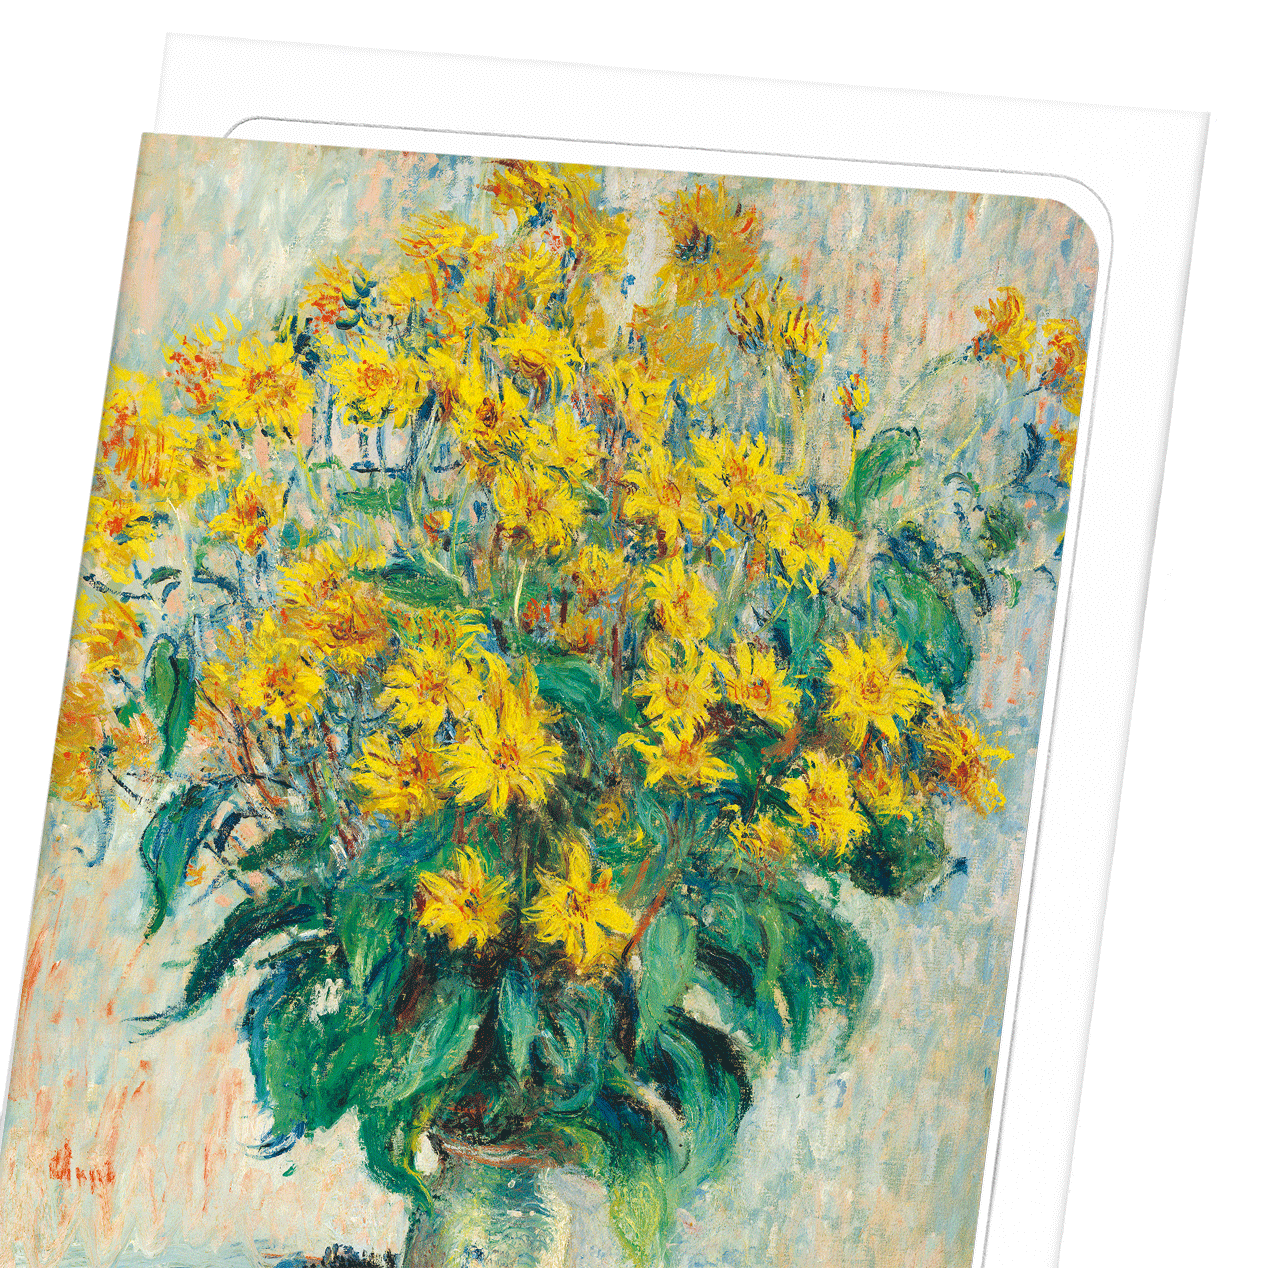 JERUSALEM ARTICHOKE FLOWERS (1880): 8xCards